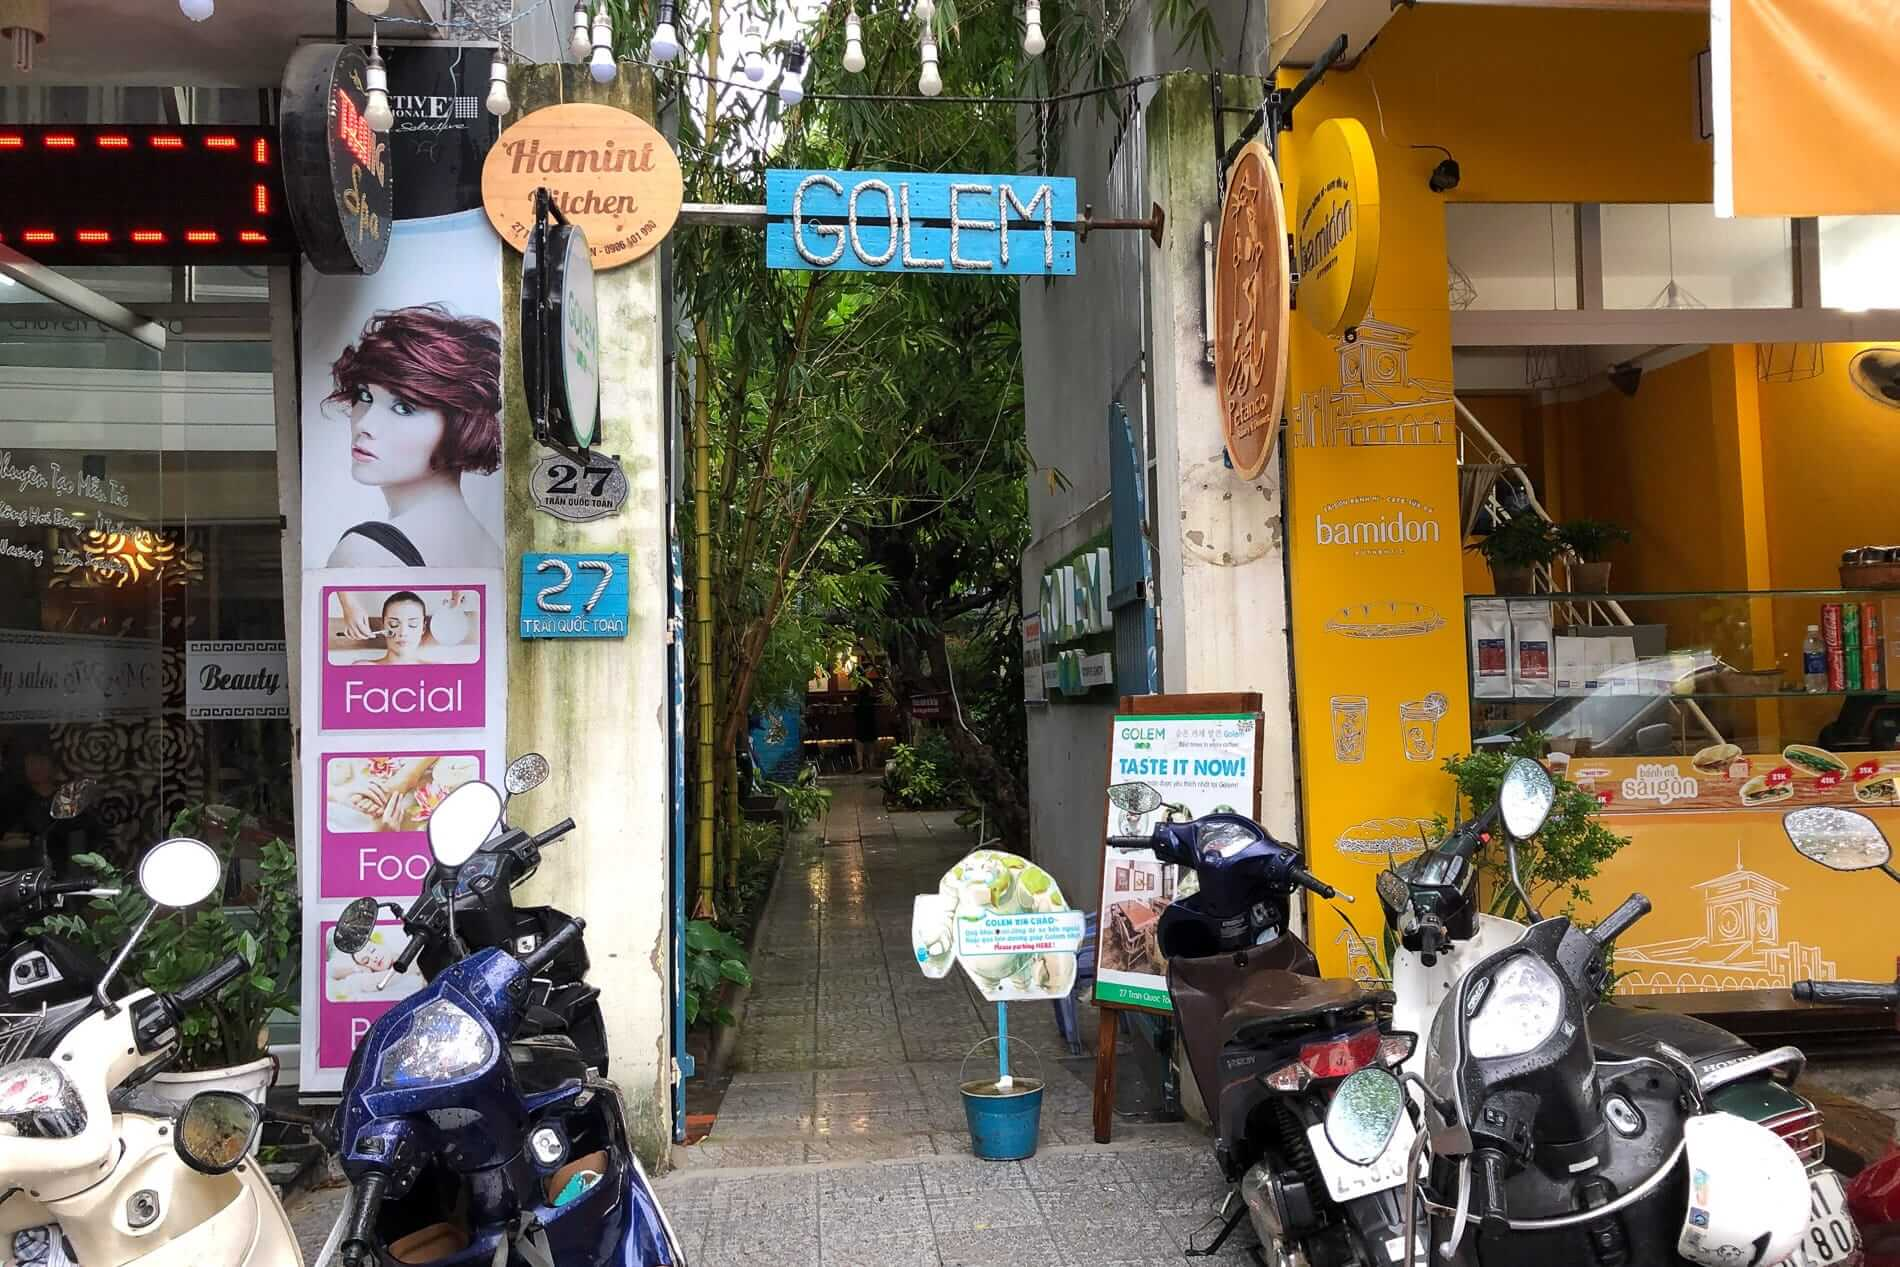 alleyway entrance to Golem Coffeeshop in a cafe in Da Nang